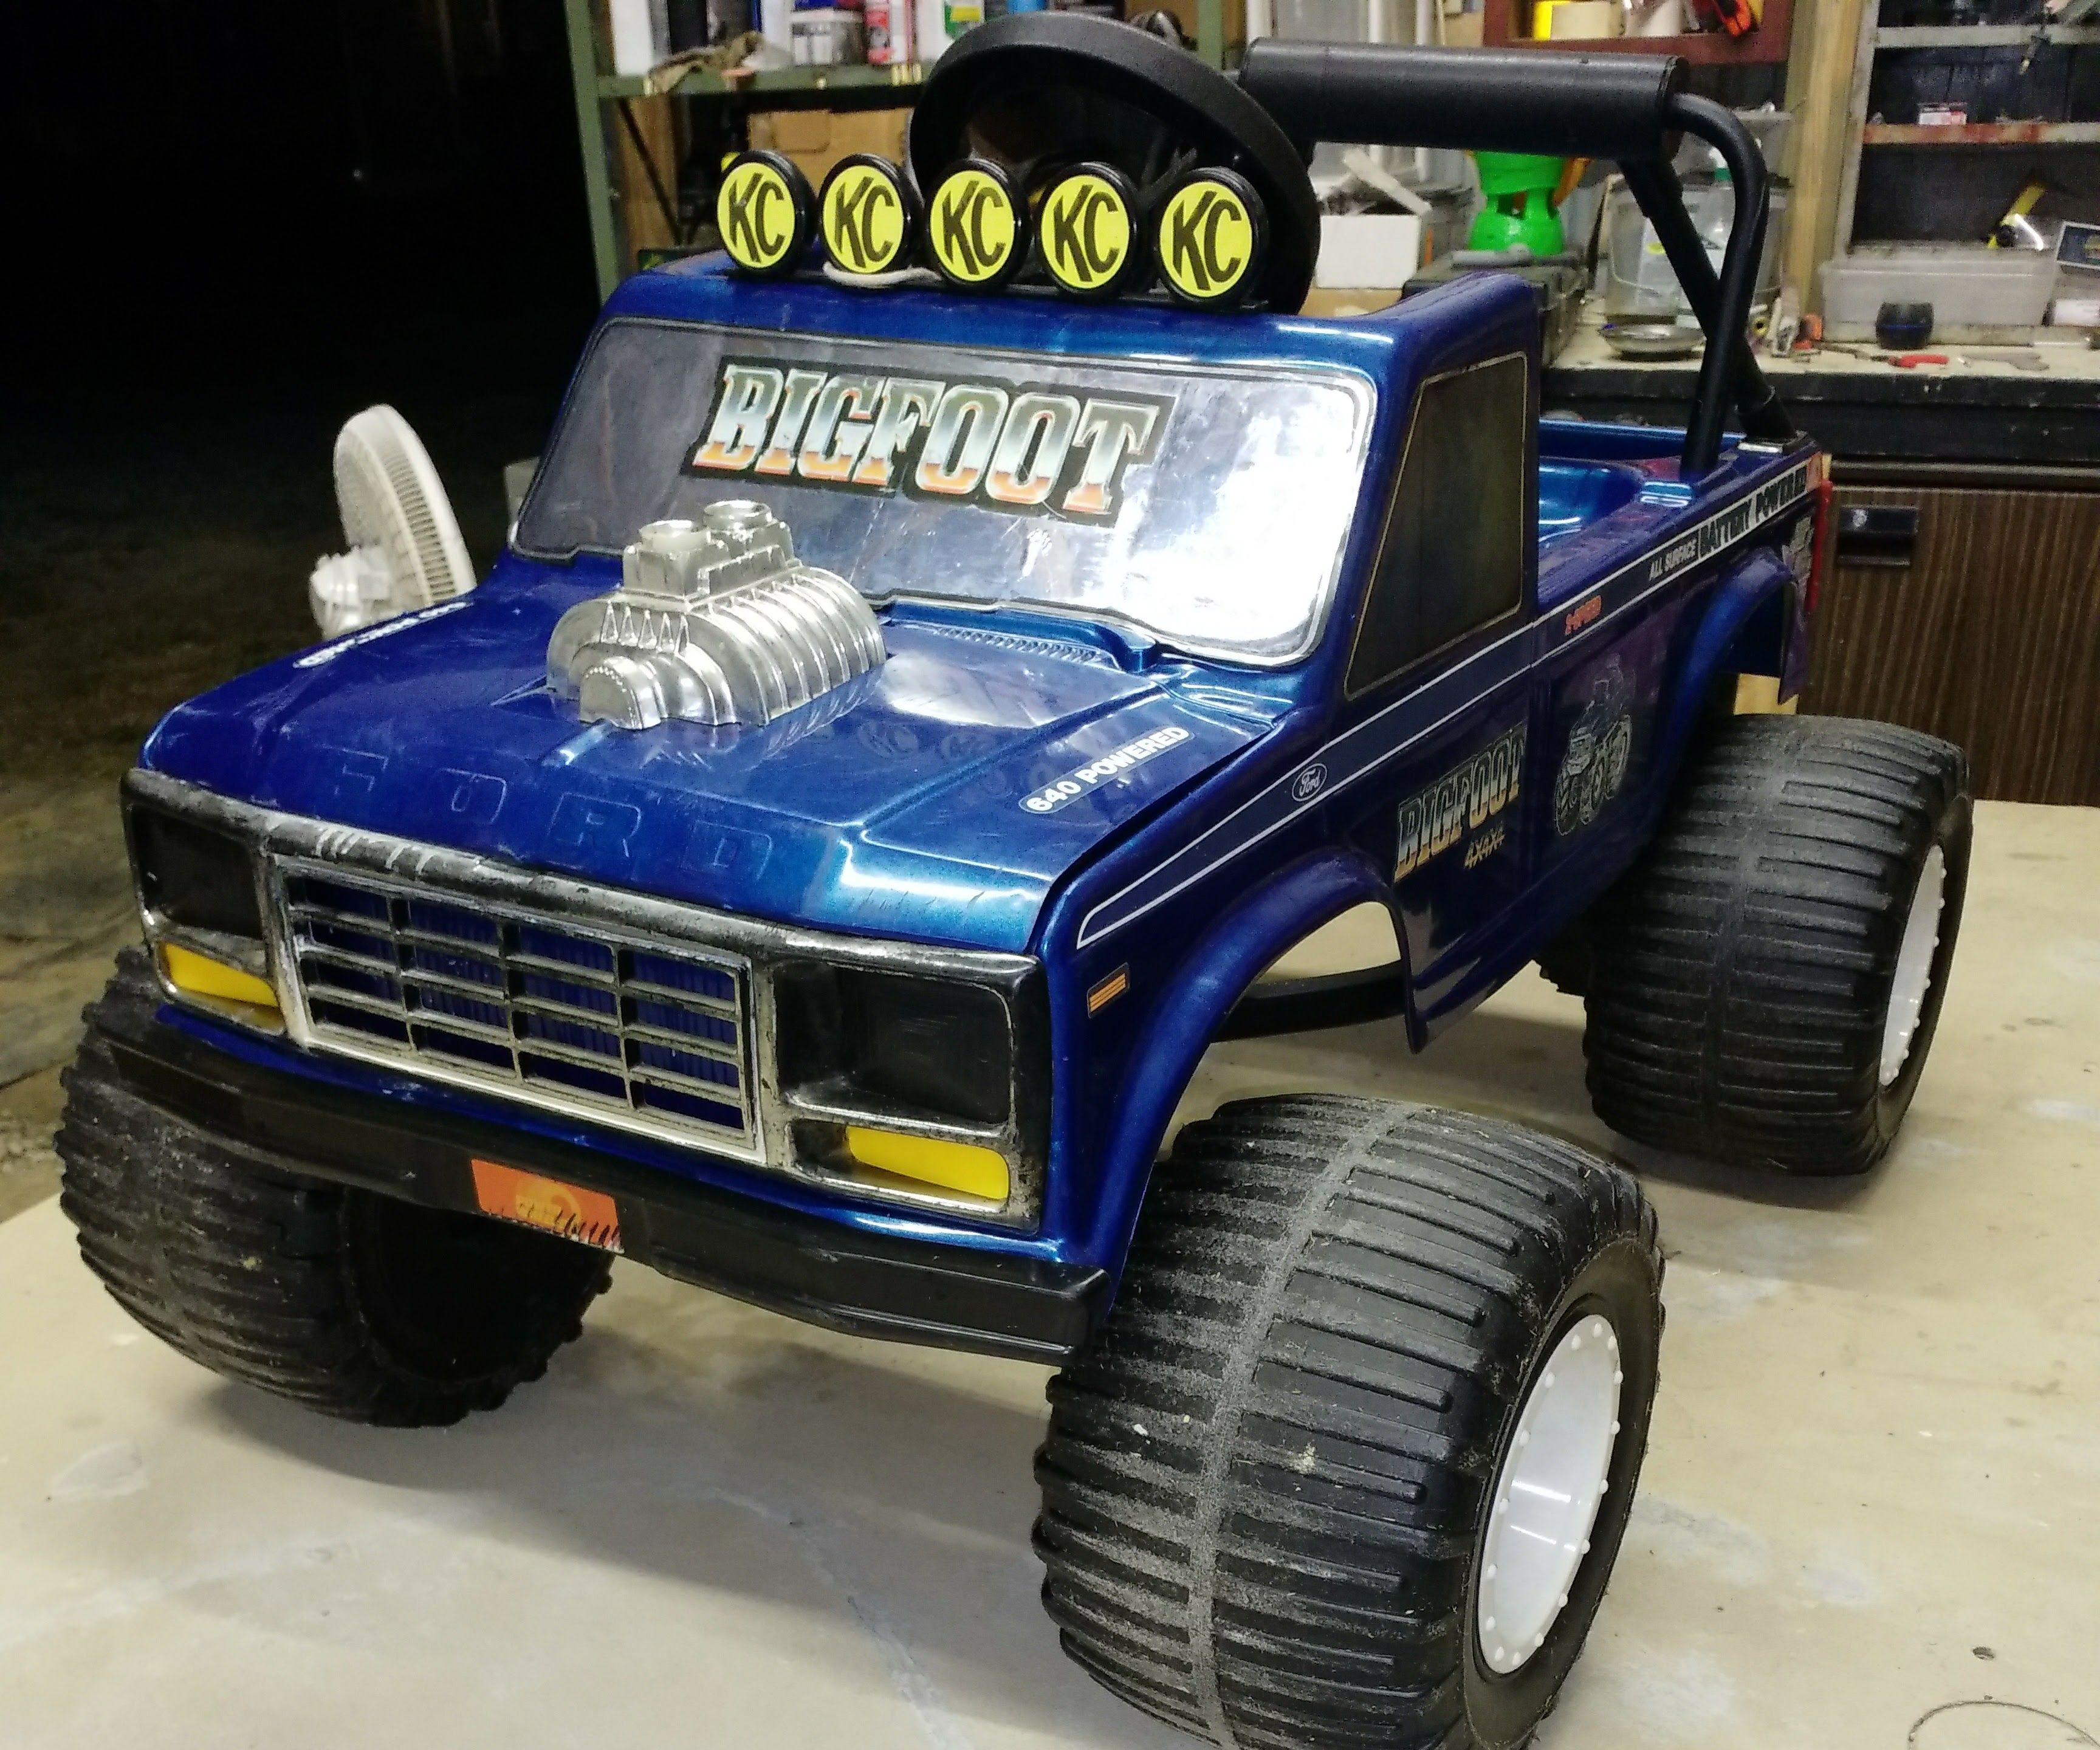 Power Wheels Bigfoot Wiring Diagram Electrical Diagrams Ford F 150 Schematic Installing New Motors On 7 Steps With Pictures